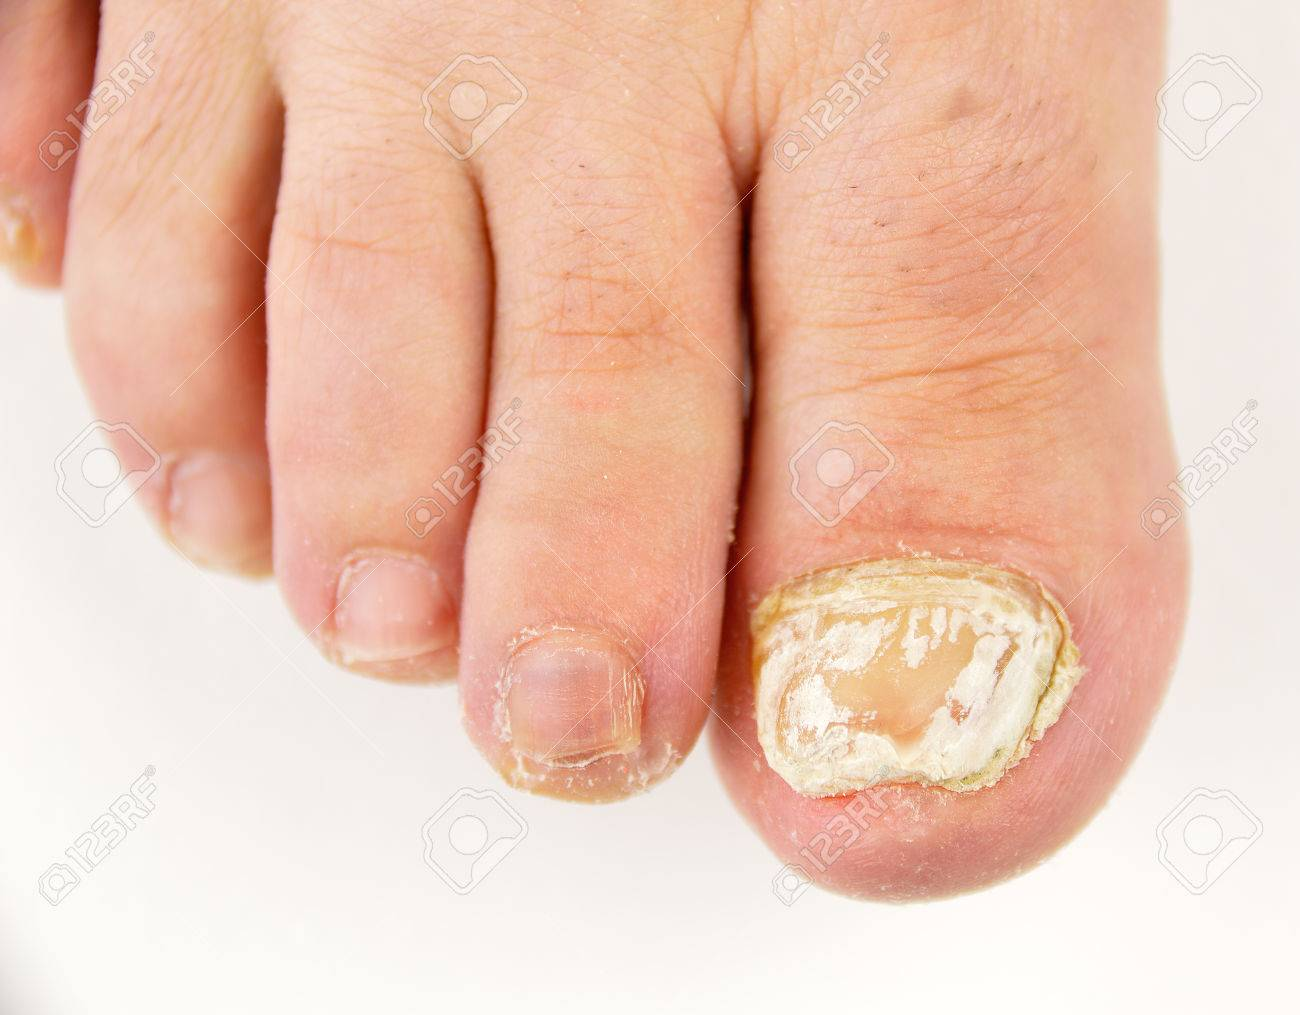 Close Up Image Of Left Foot Toe Nail Suffering From Fungus Infection ...